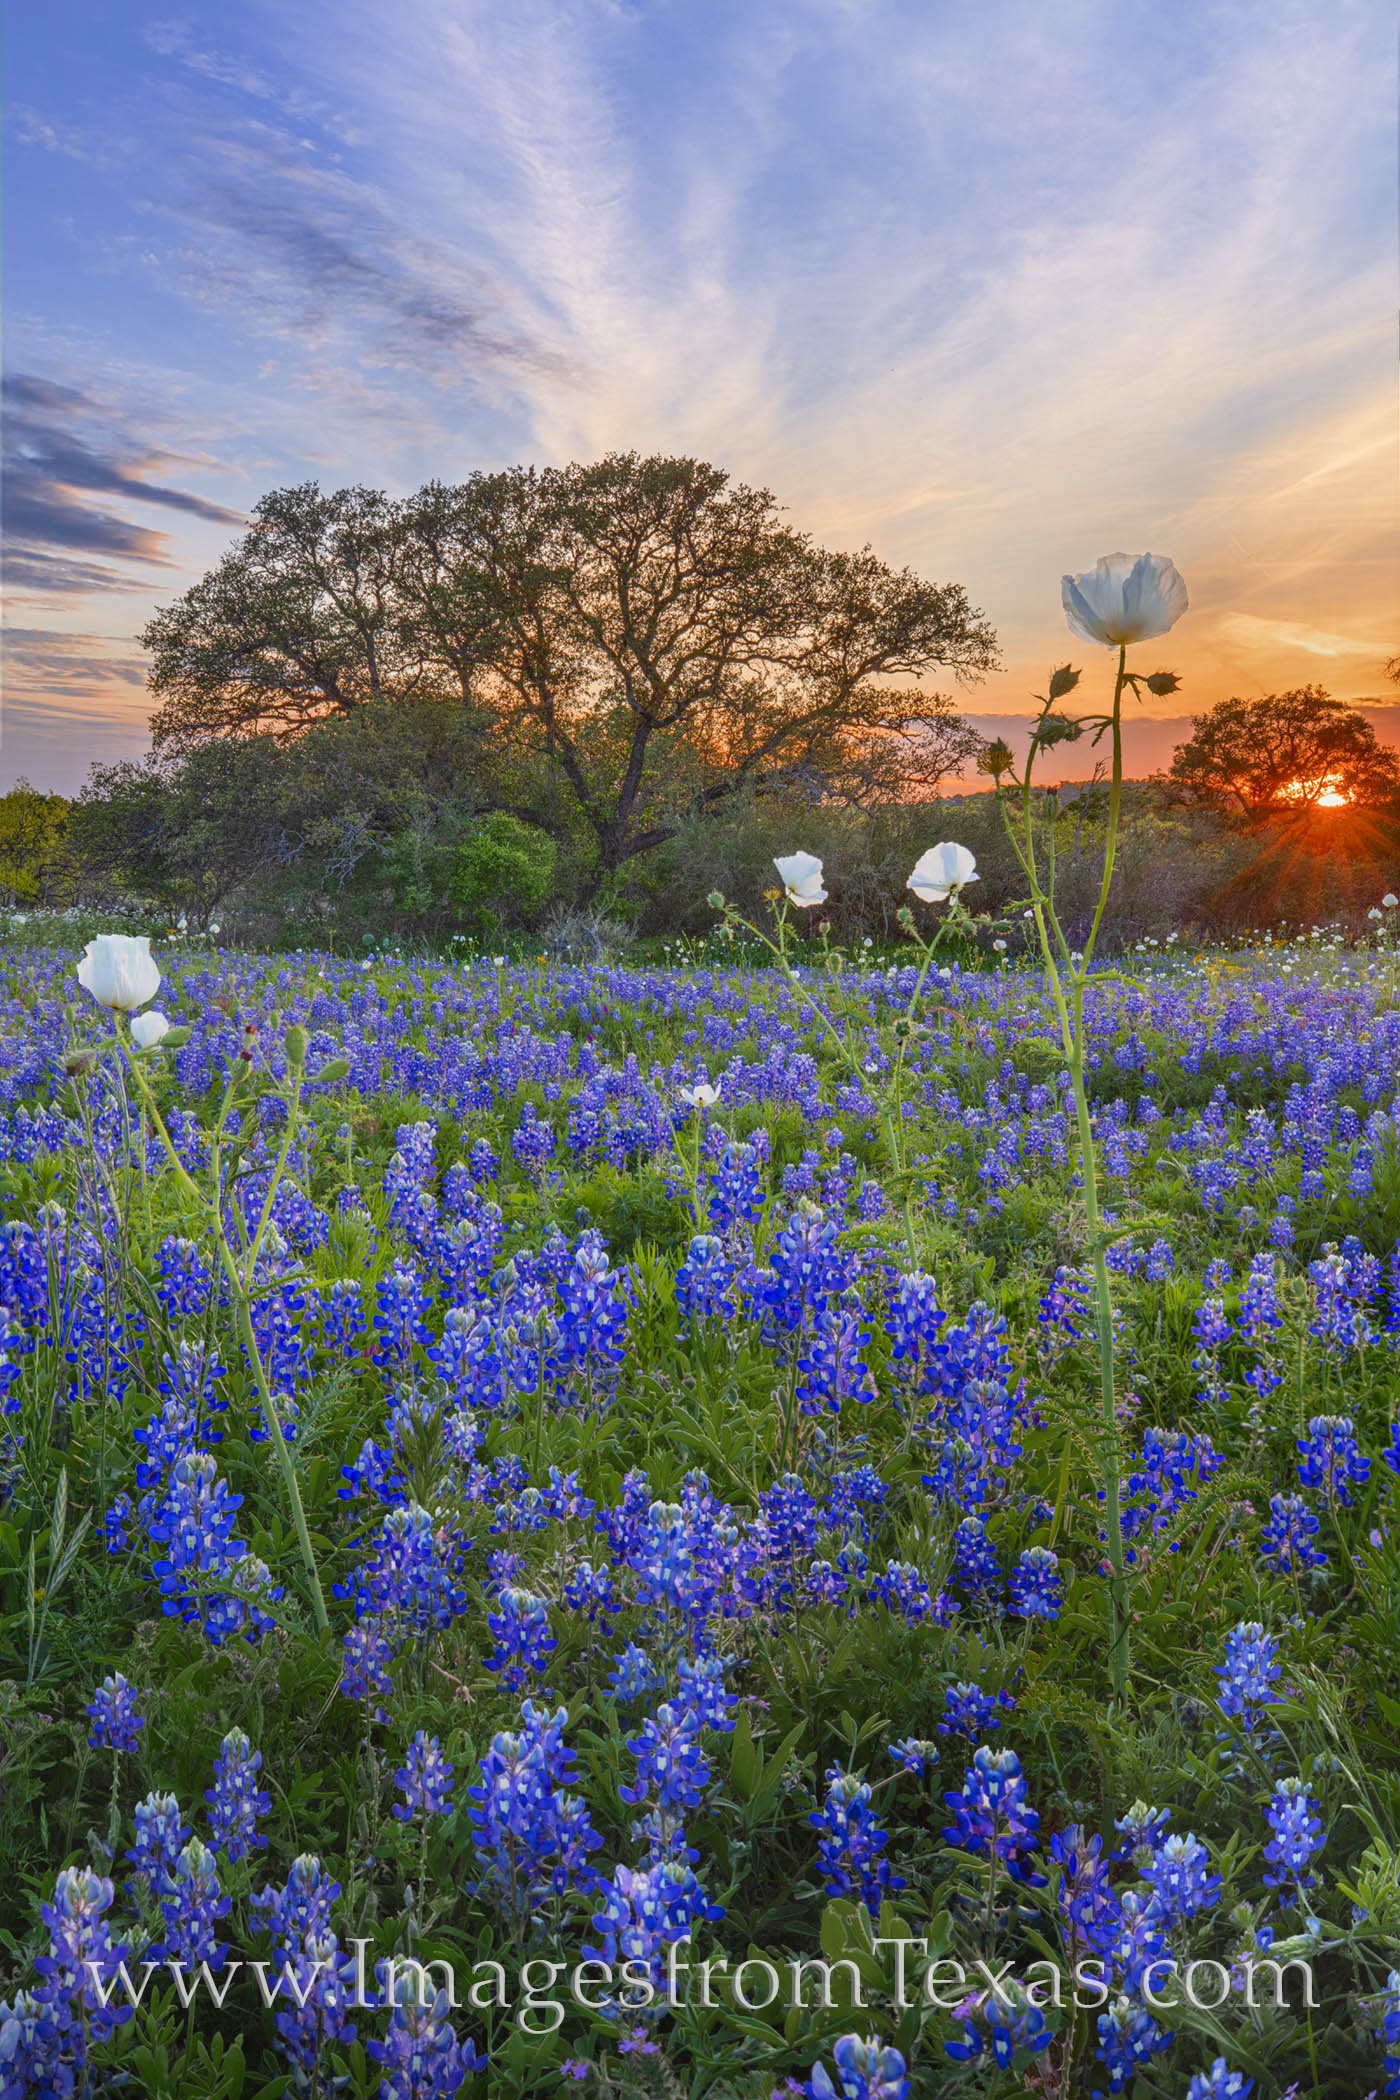 bluebonnets, wildflowers, prickly poppies, dirt road, hill country, sunset, sunburst, evening, exploring texas, county road, country road, photo